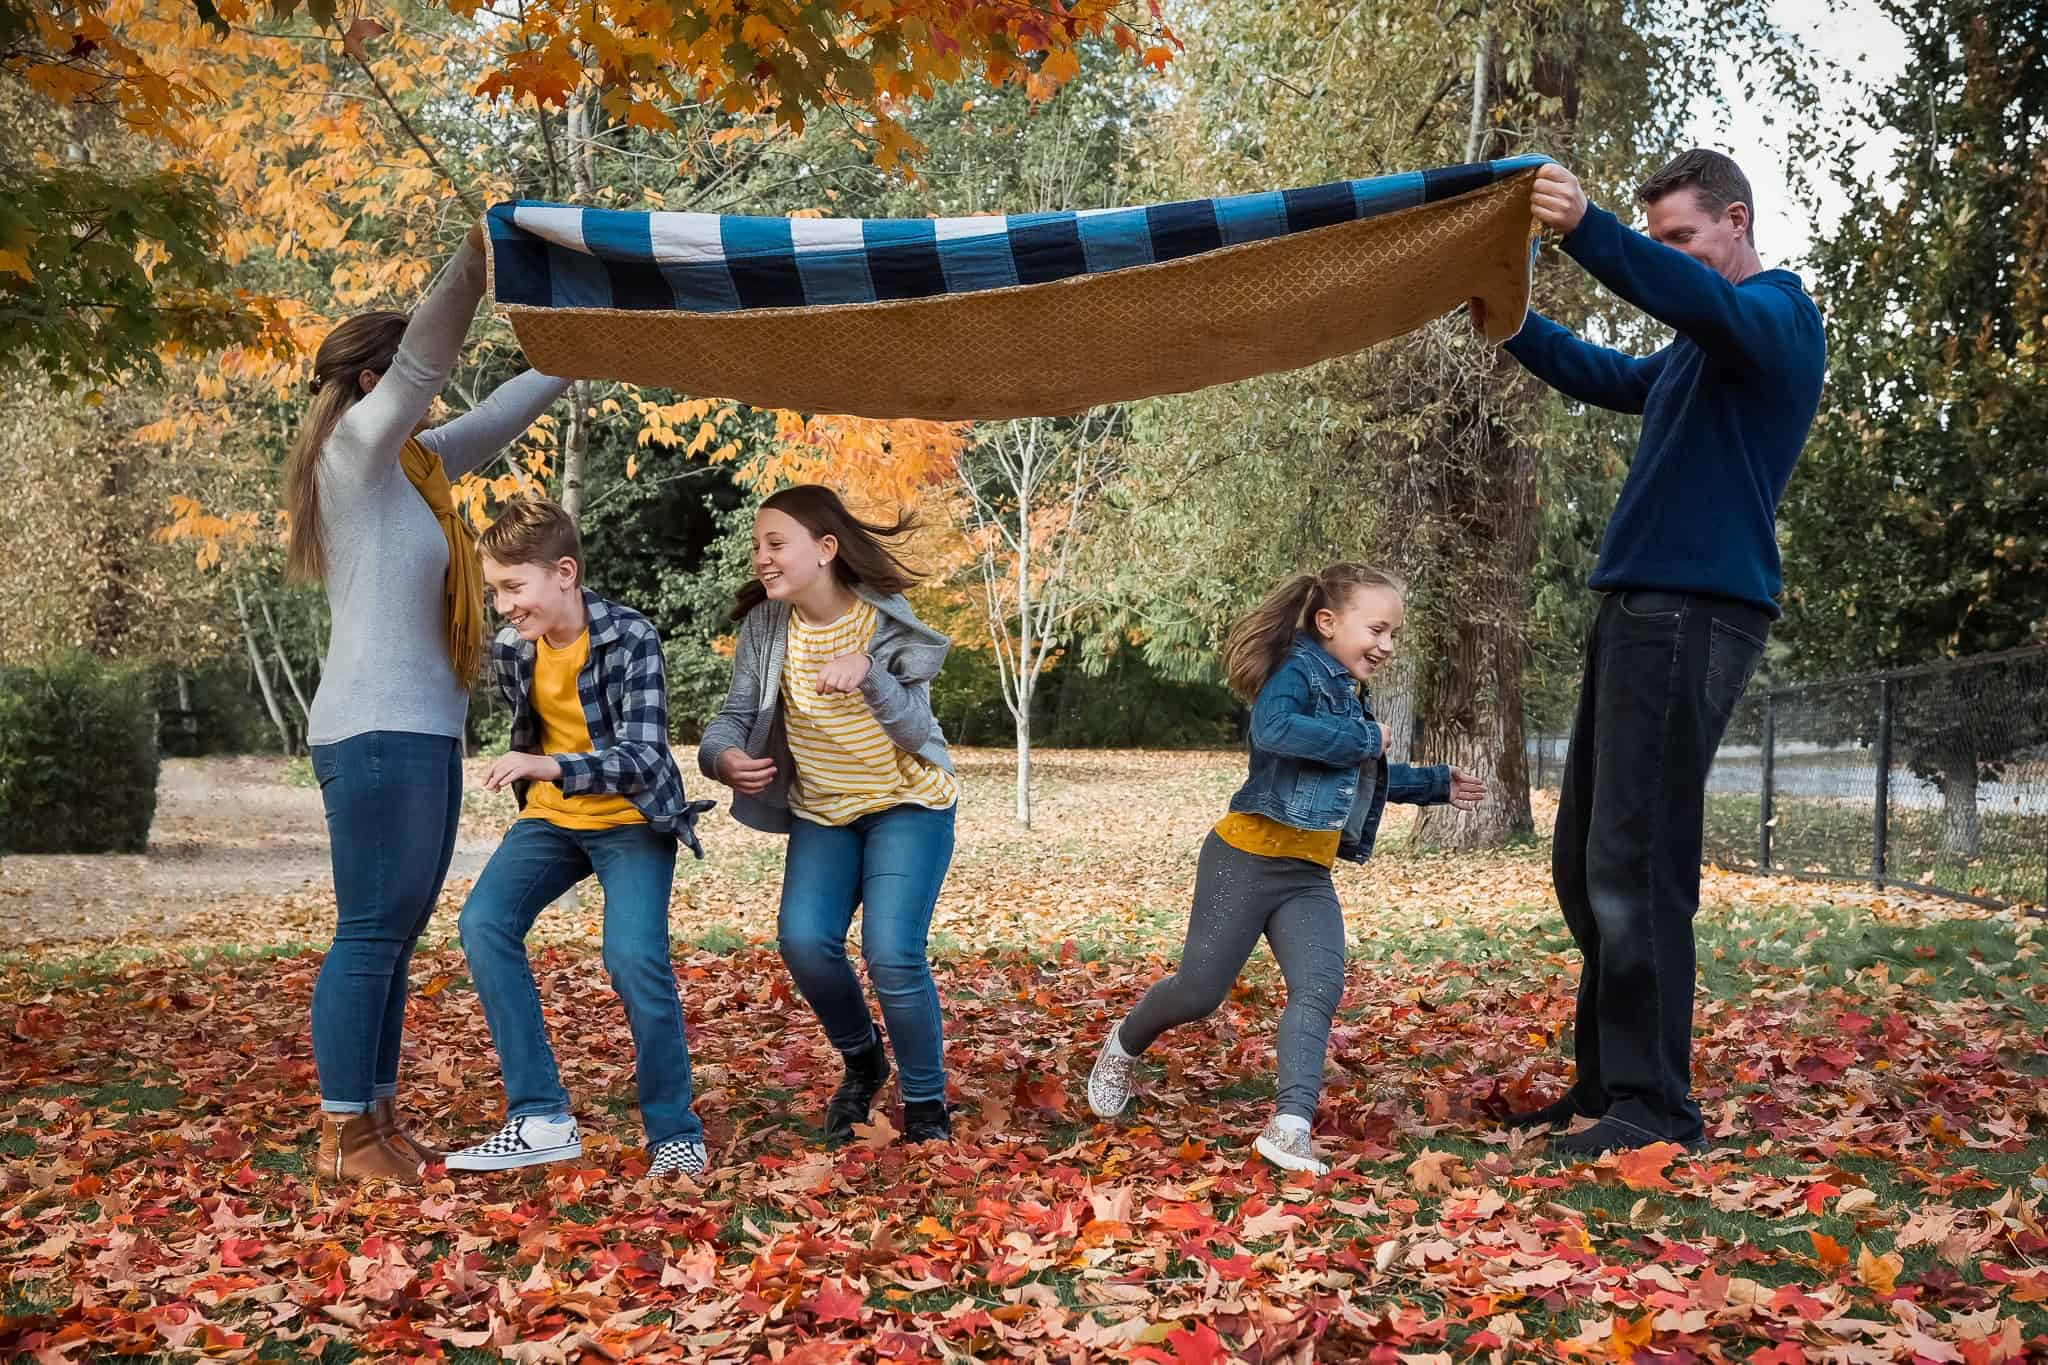 family running and playing in autumn leaves